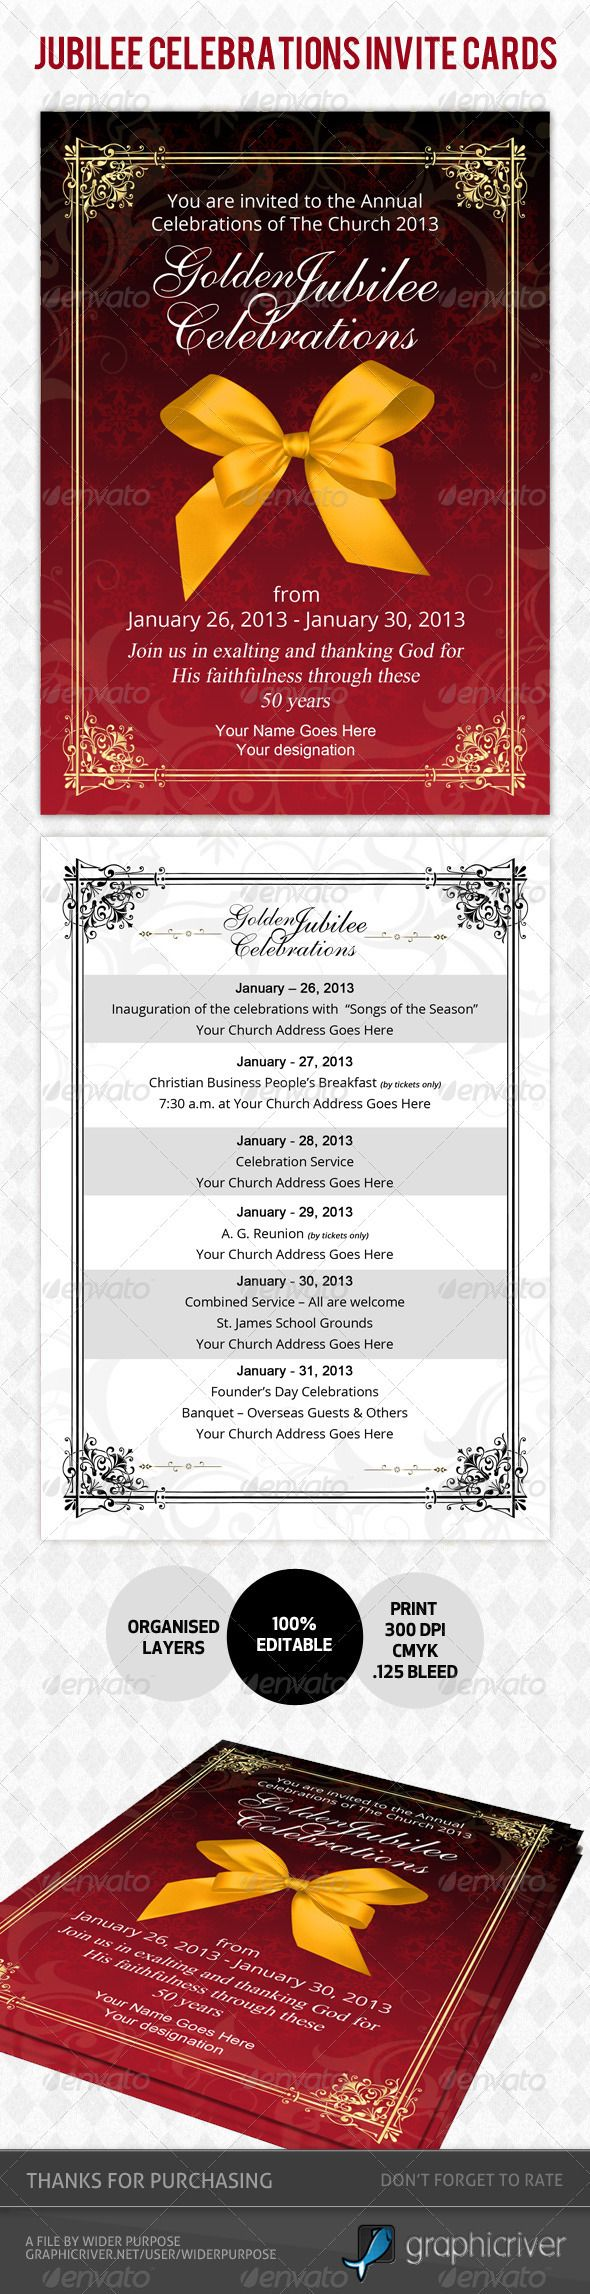 Golden Jubilee Invitation Card - Ideal for all your \